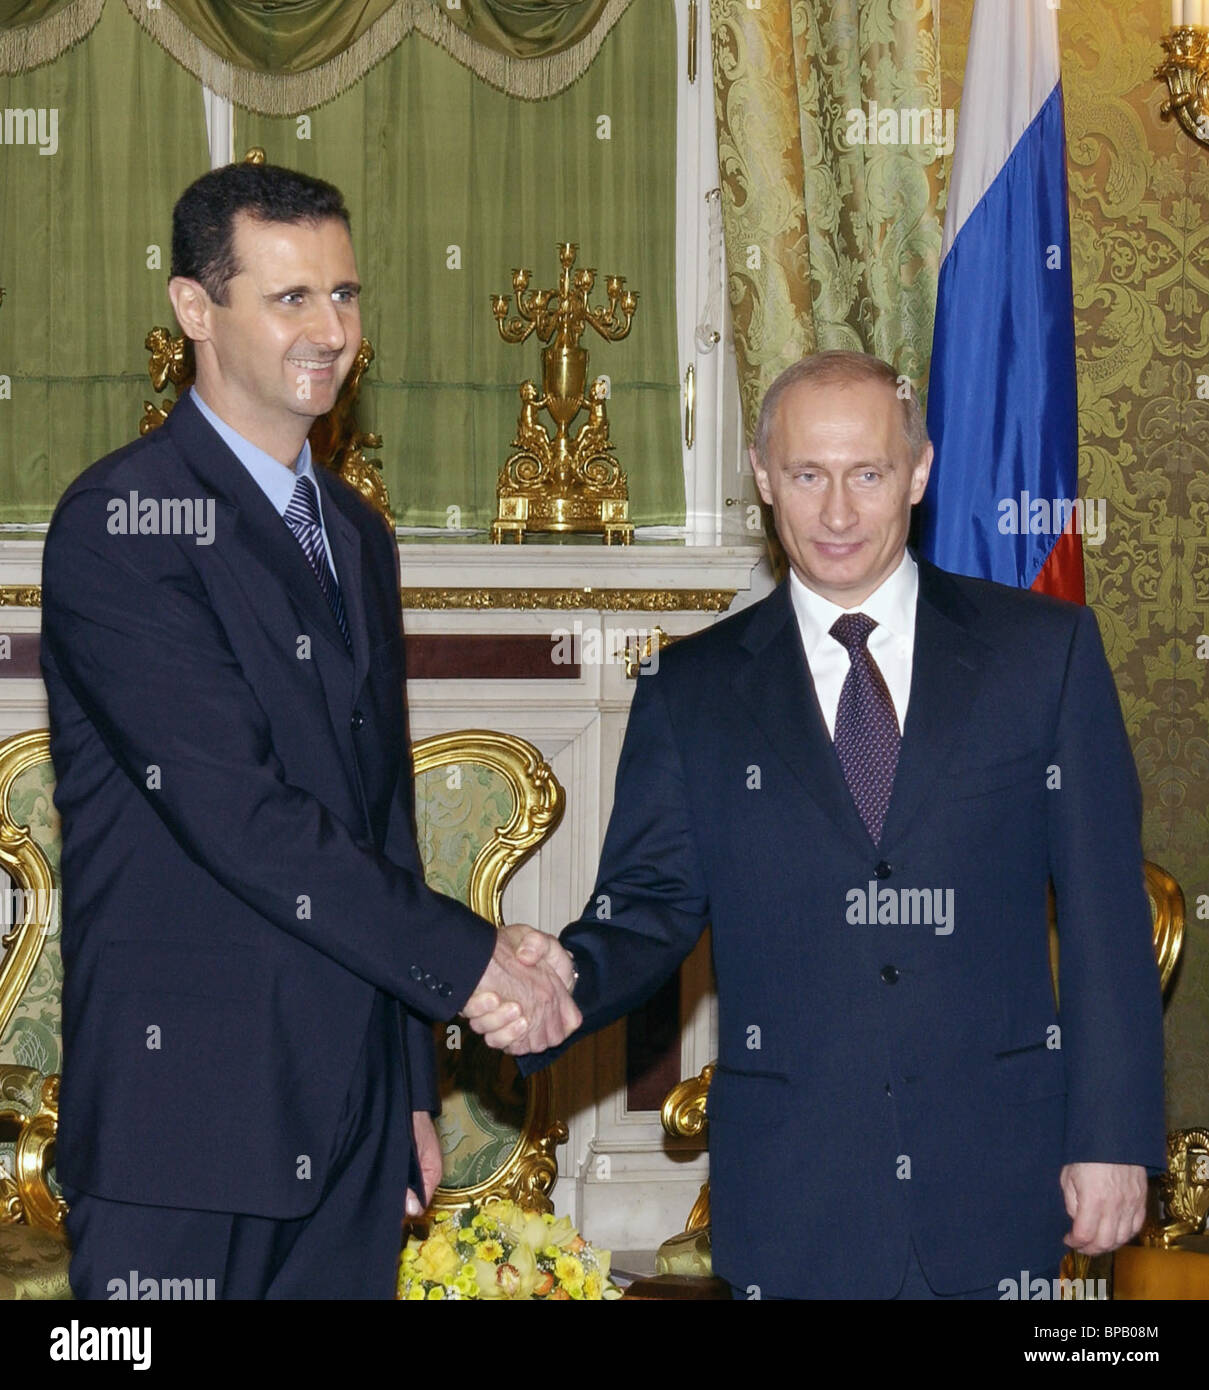 Putin met with Bashar al-Assad in the Kremlin - Stock Image